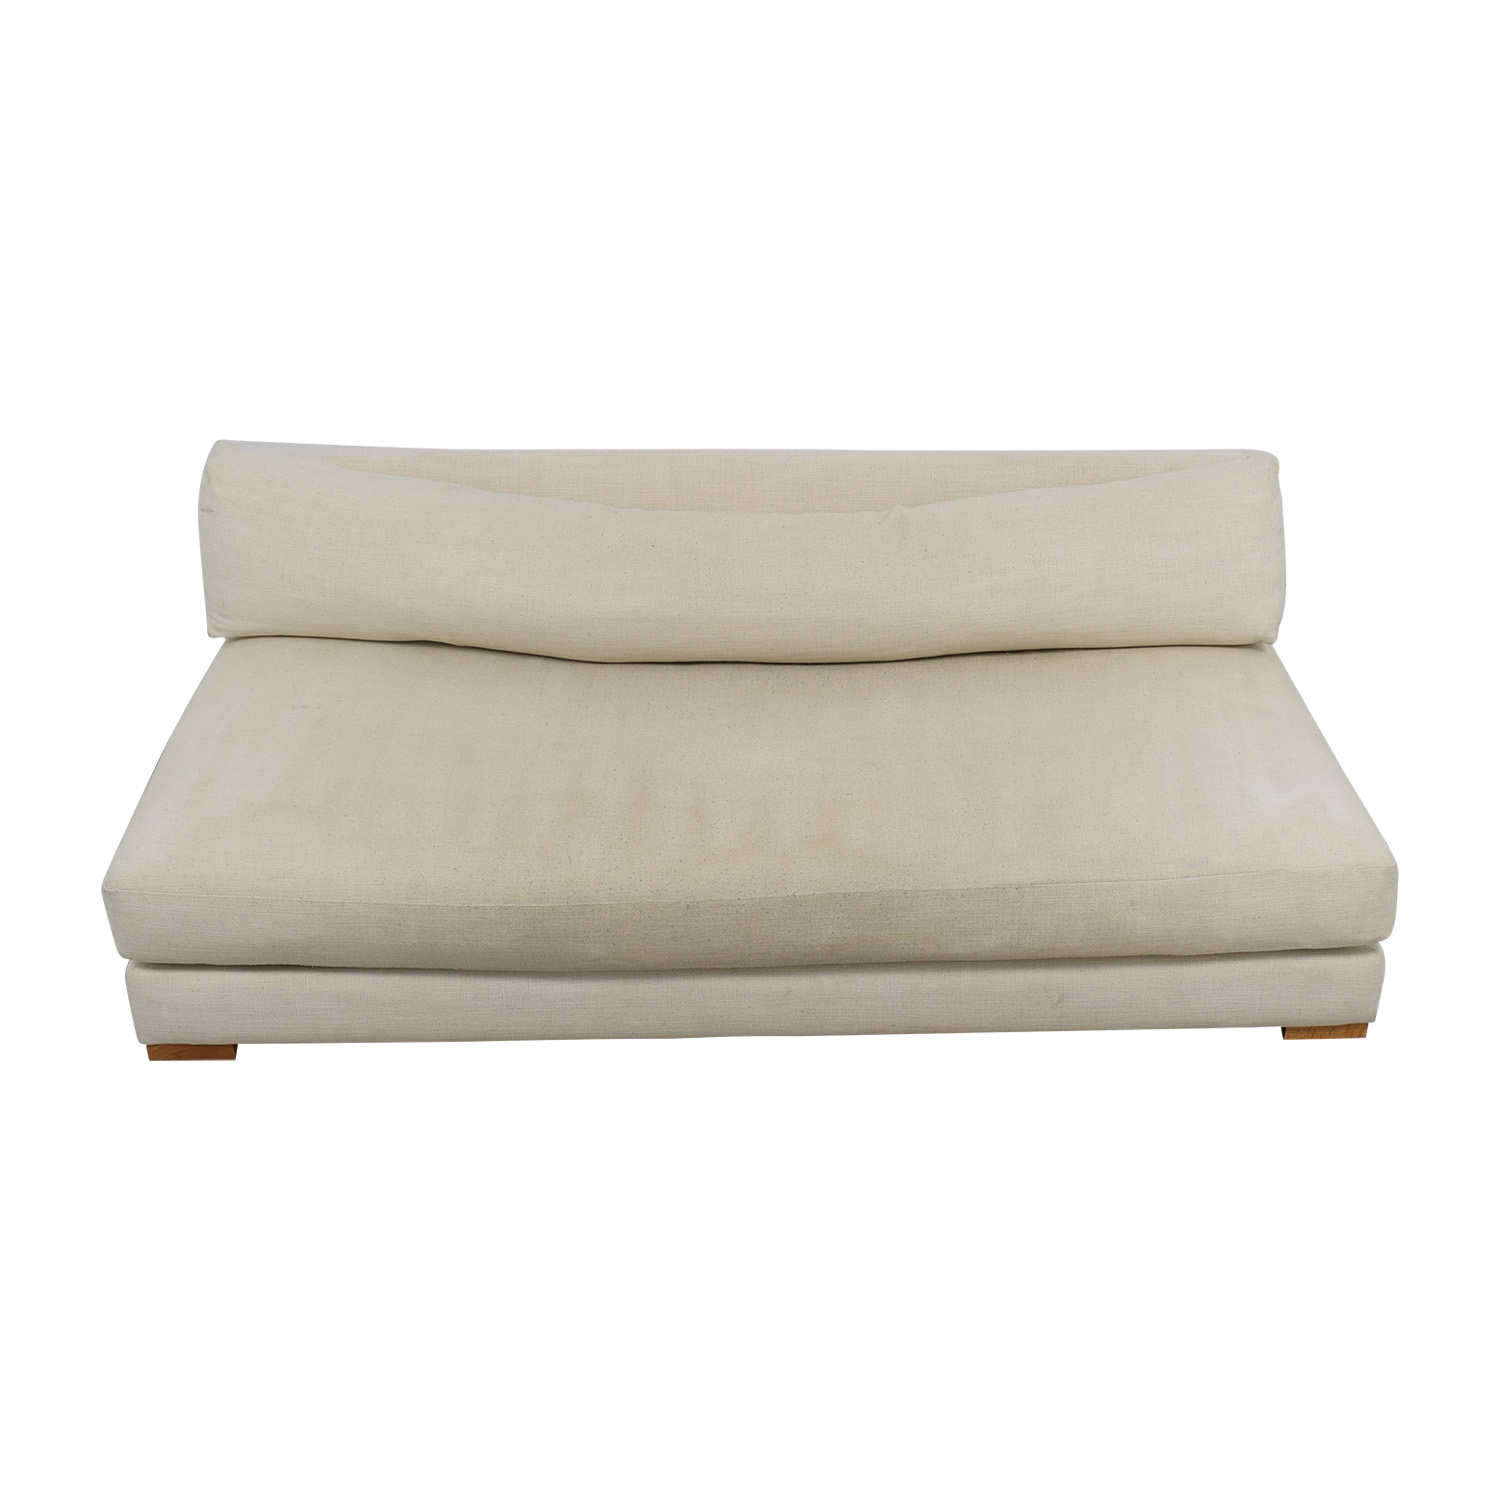 shop CB2 Piazza White Single Cushion Sofa CB2 Sofas